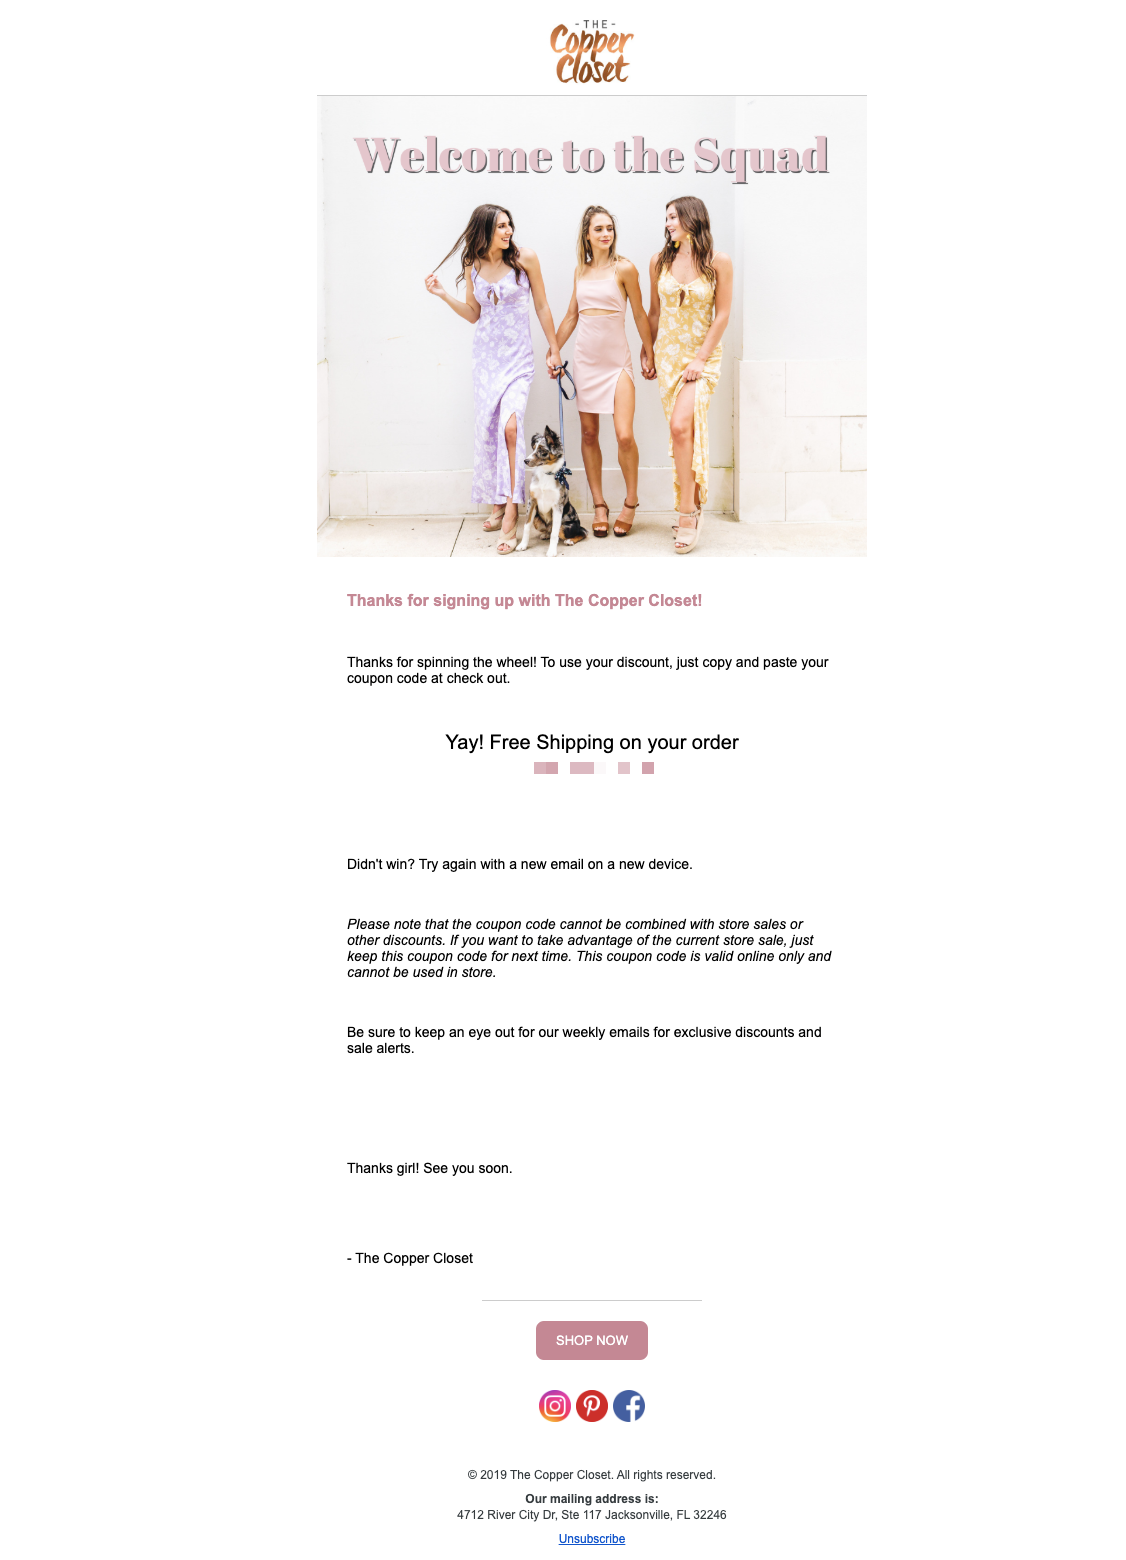 Welcome Email Example From Copper Closet Privy